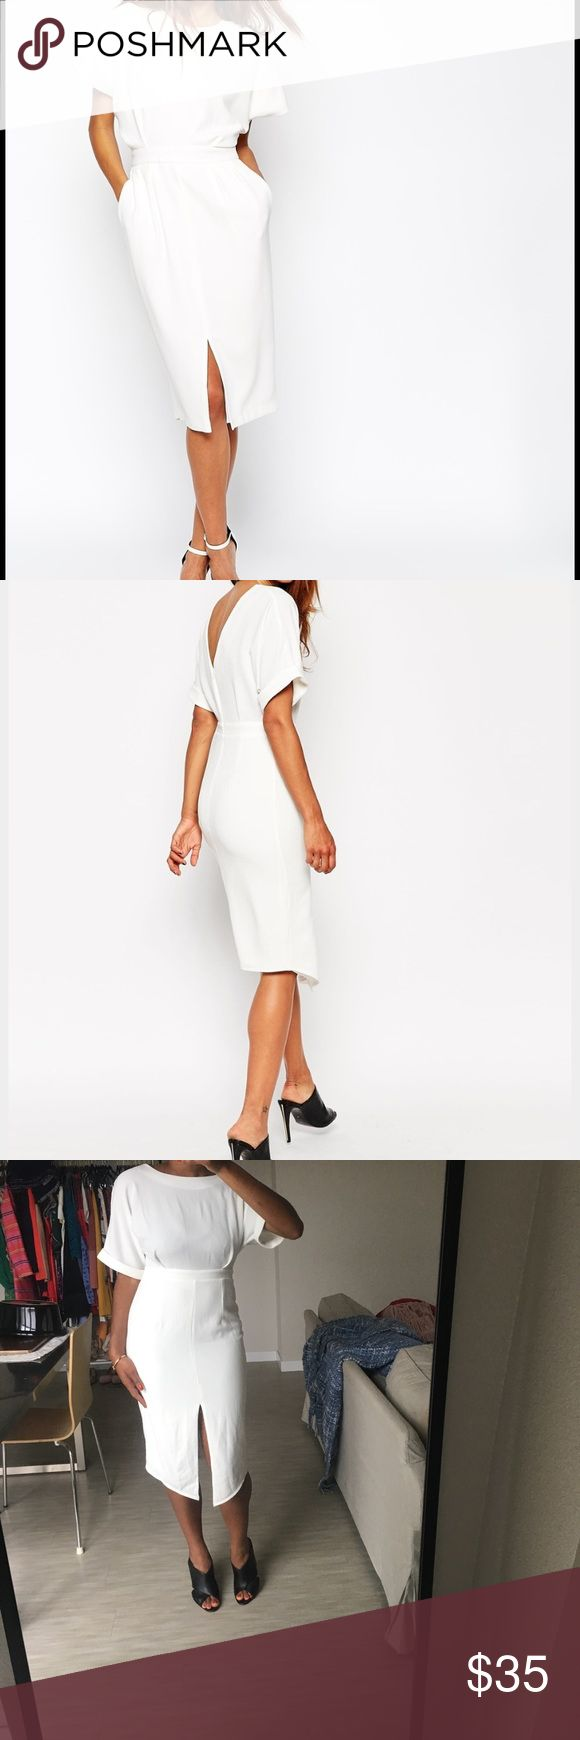 ASOS cream wiggle pencil dress ASOS cream pencil dress with split front hem! Very versatile and comfortable--worn once. Size 8. Calvin Klein heels pictured also for sale! ASOS Dresses Midi